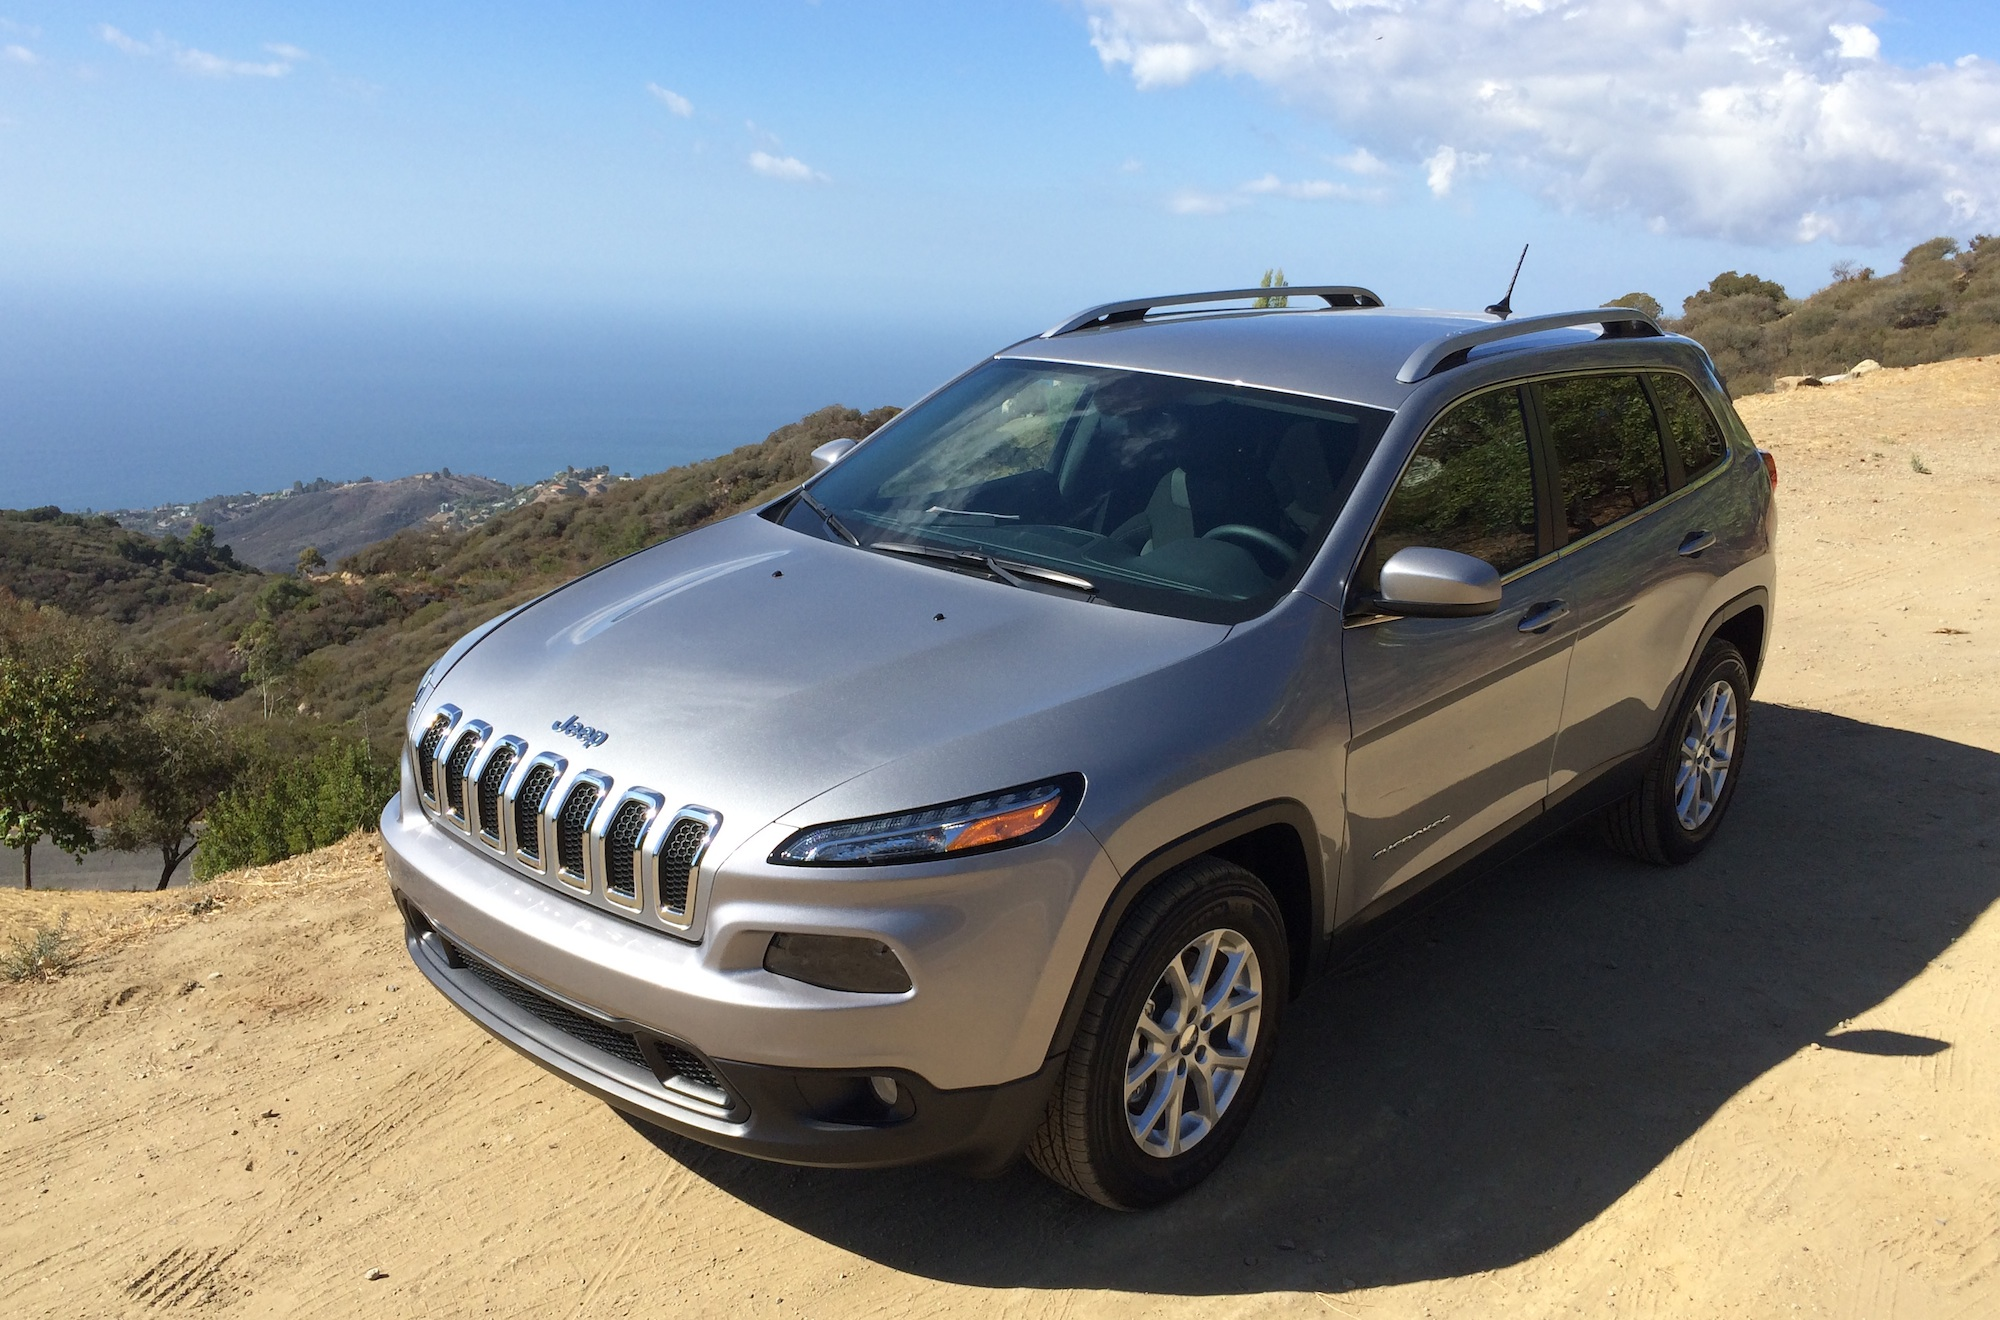 jeep cherokee review photos caradvice. Black Bedroom Furniture Sets. Home Design Ideas